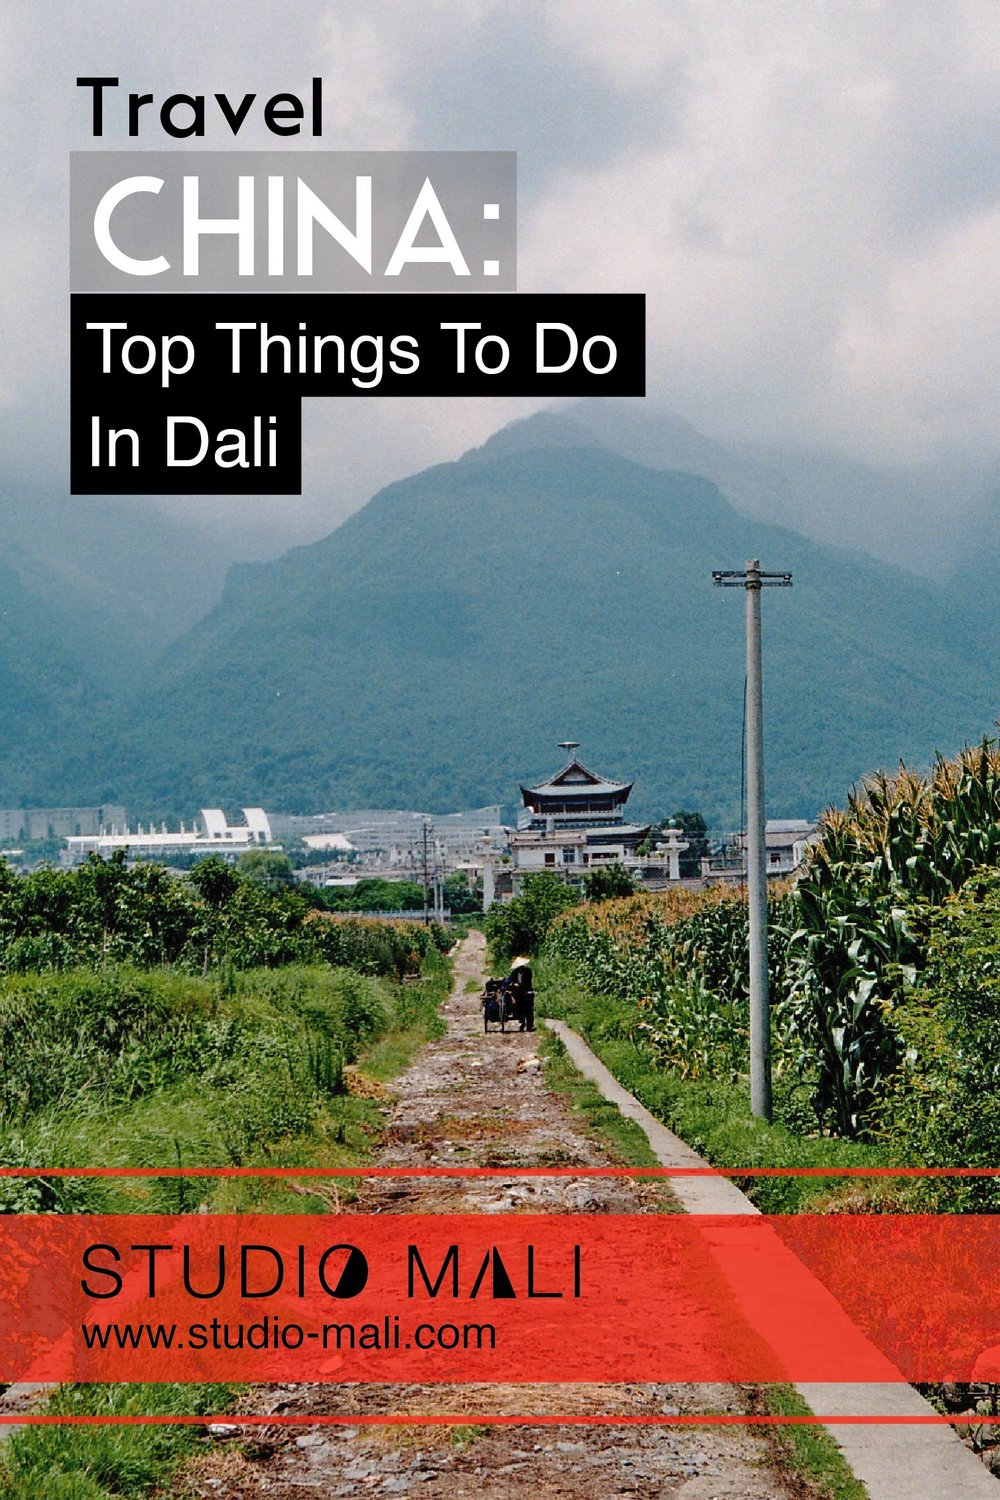 China - Top Things To Do In Dali, by Studio Mali.jpg